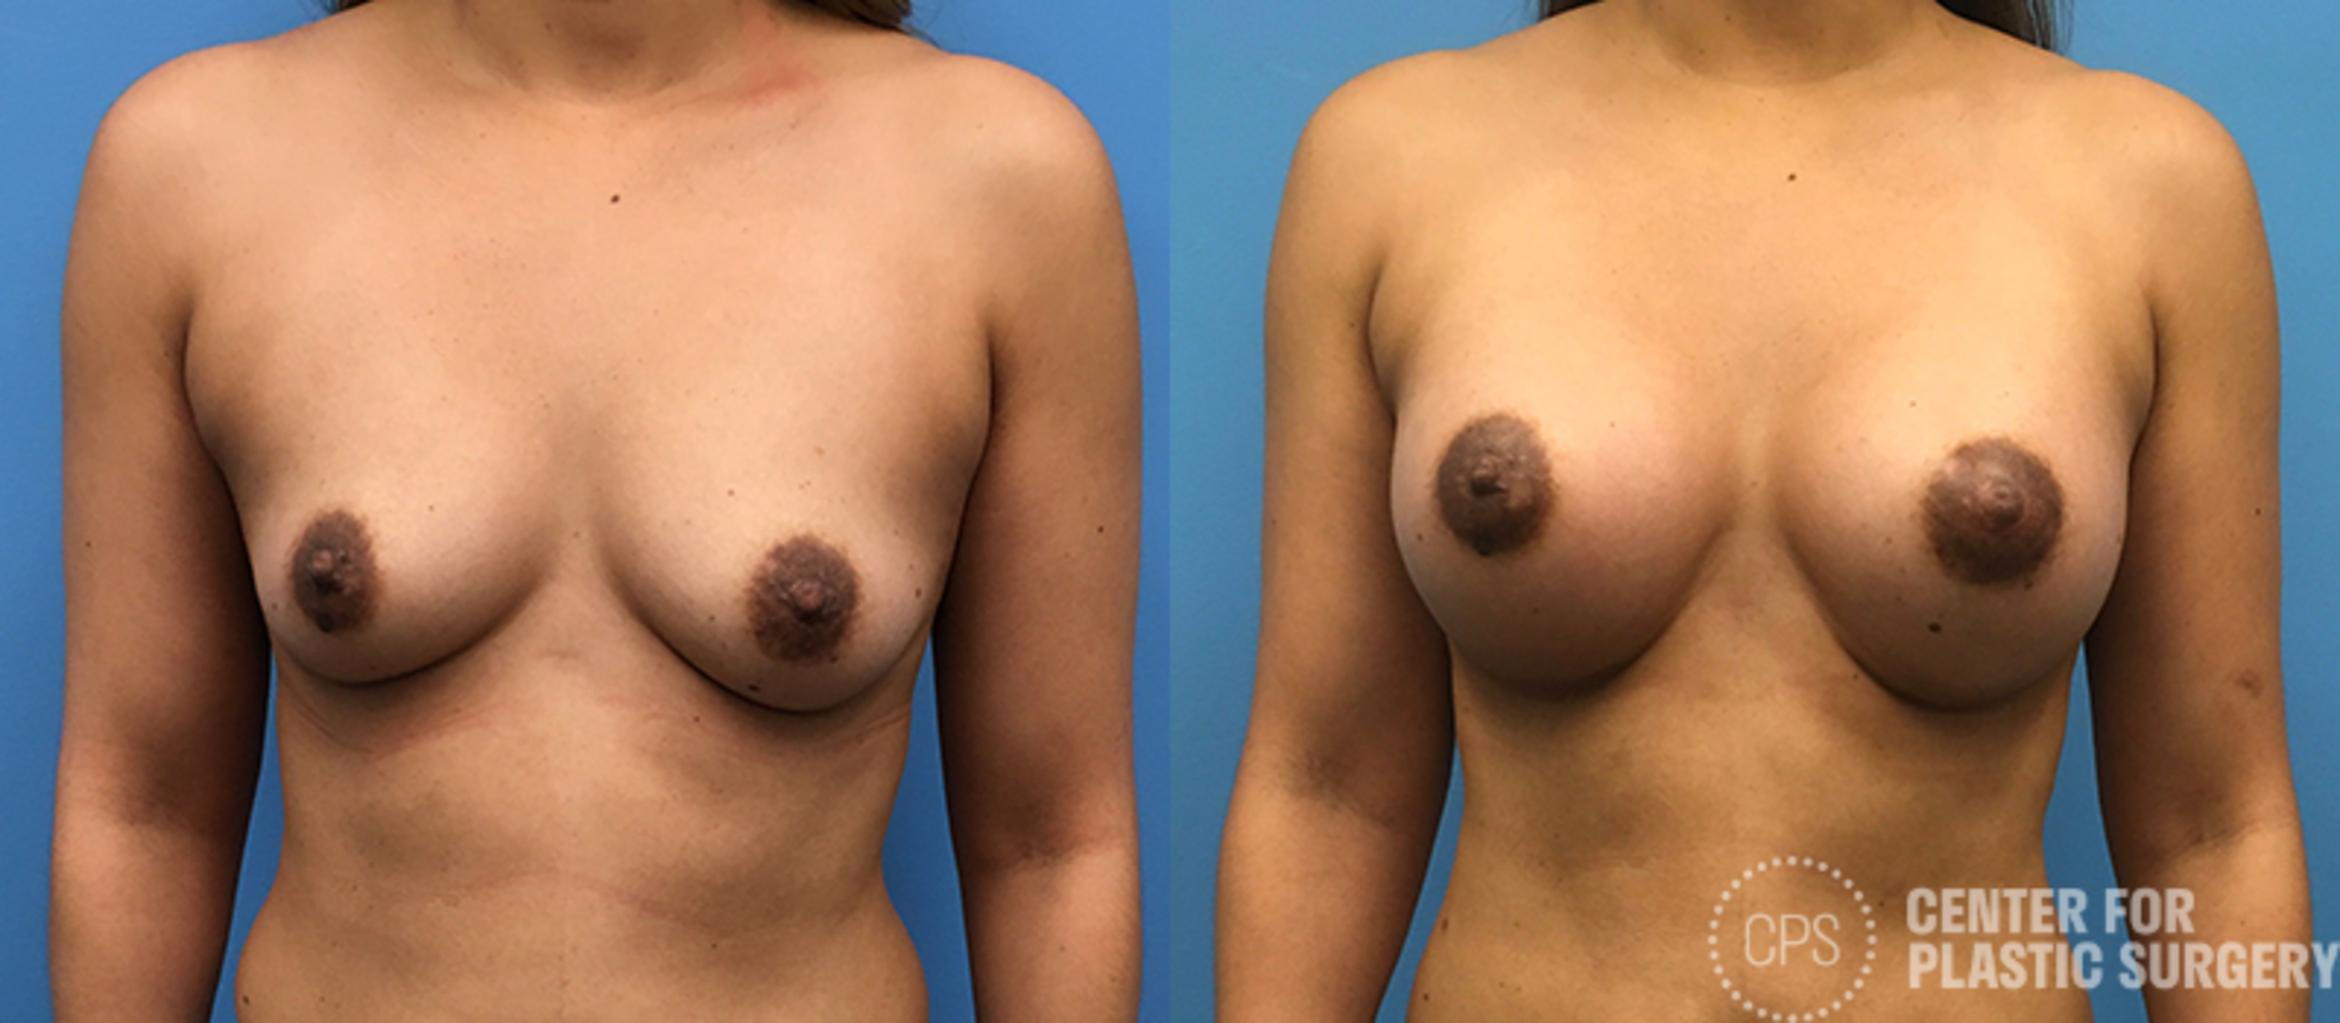 Breast Augmentation Before & After Photo | Annandale, Virginia | Center for Plastic Surgery